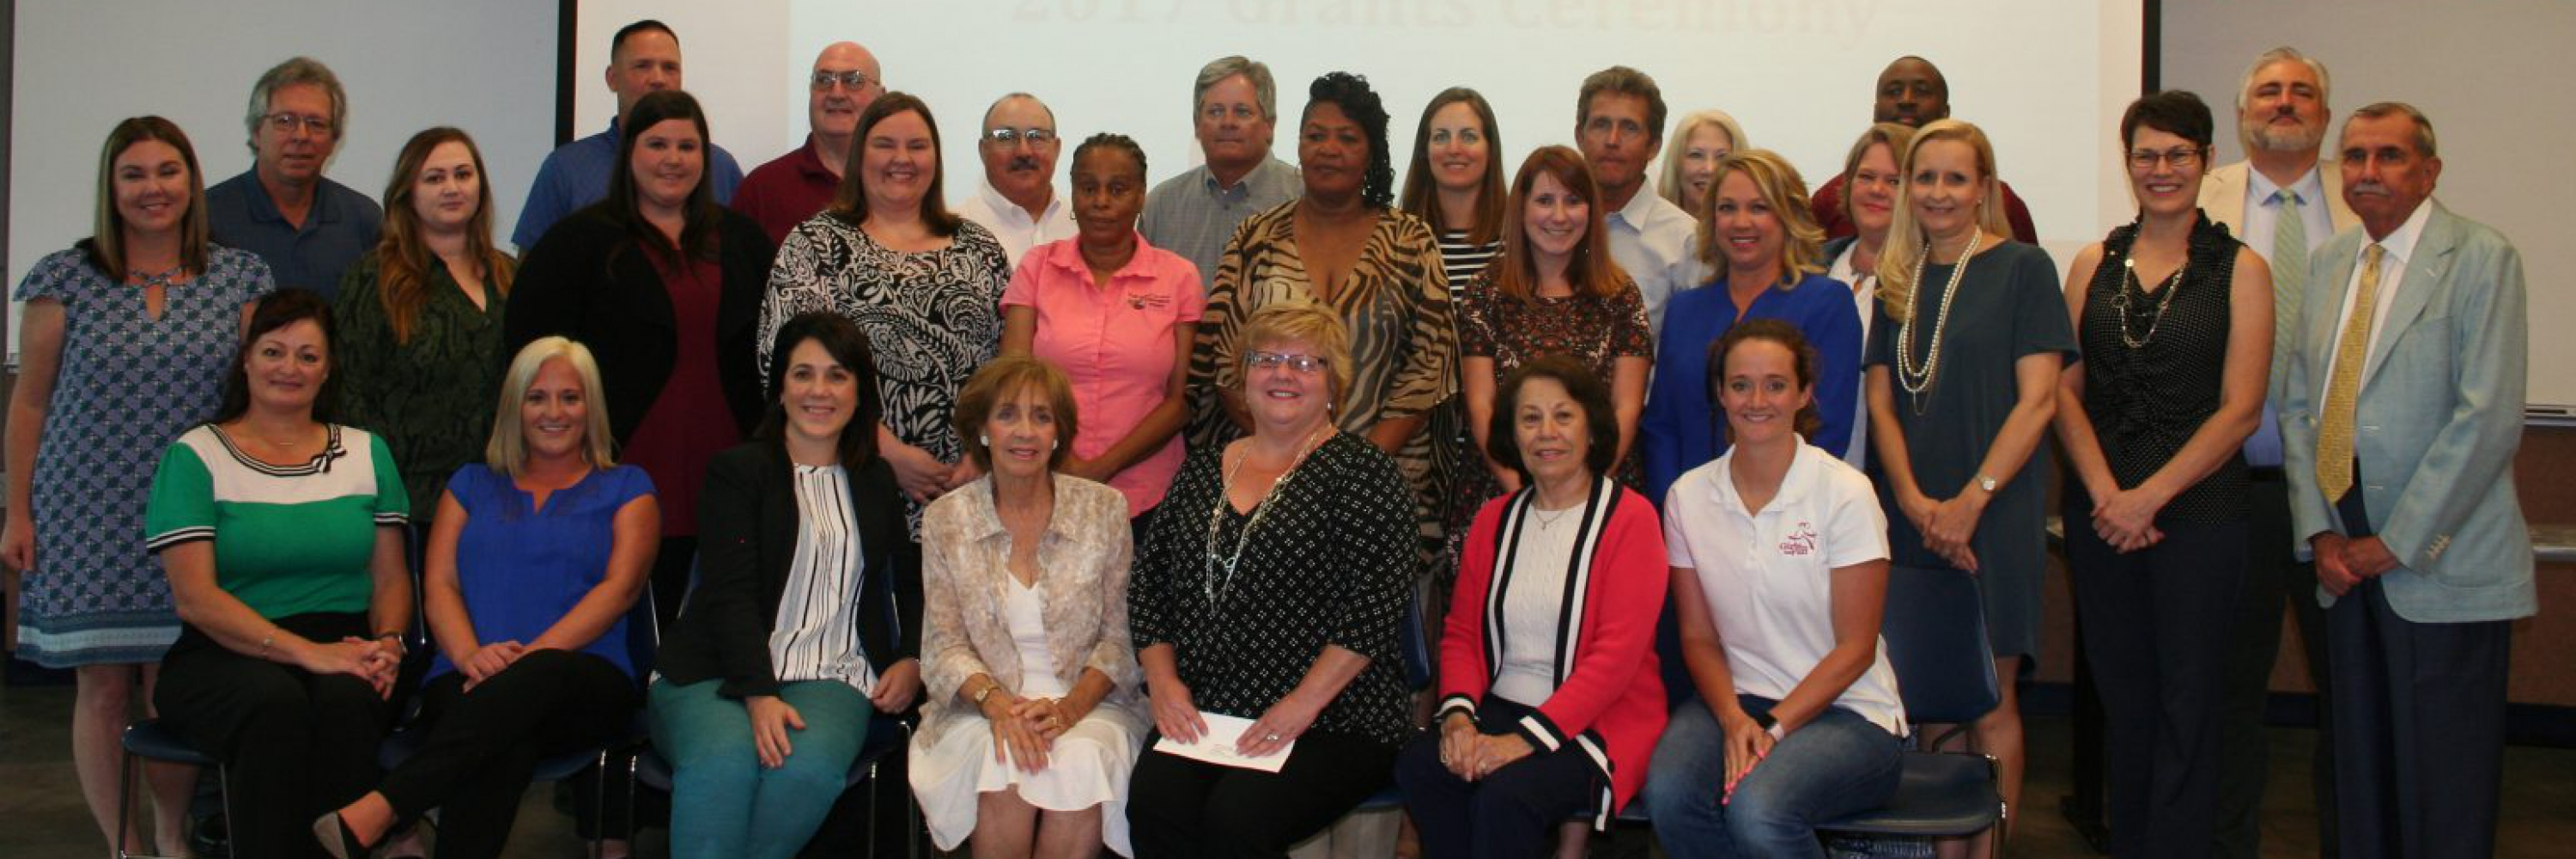 Grantee group photo